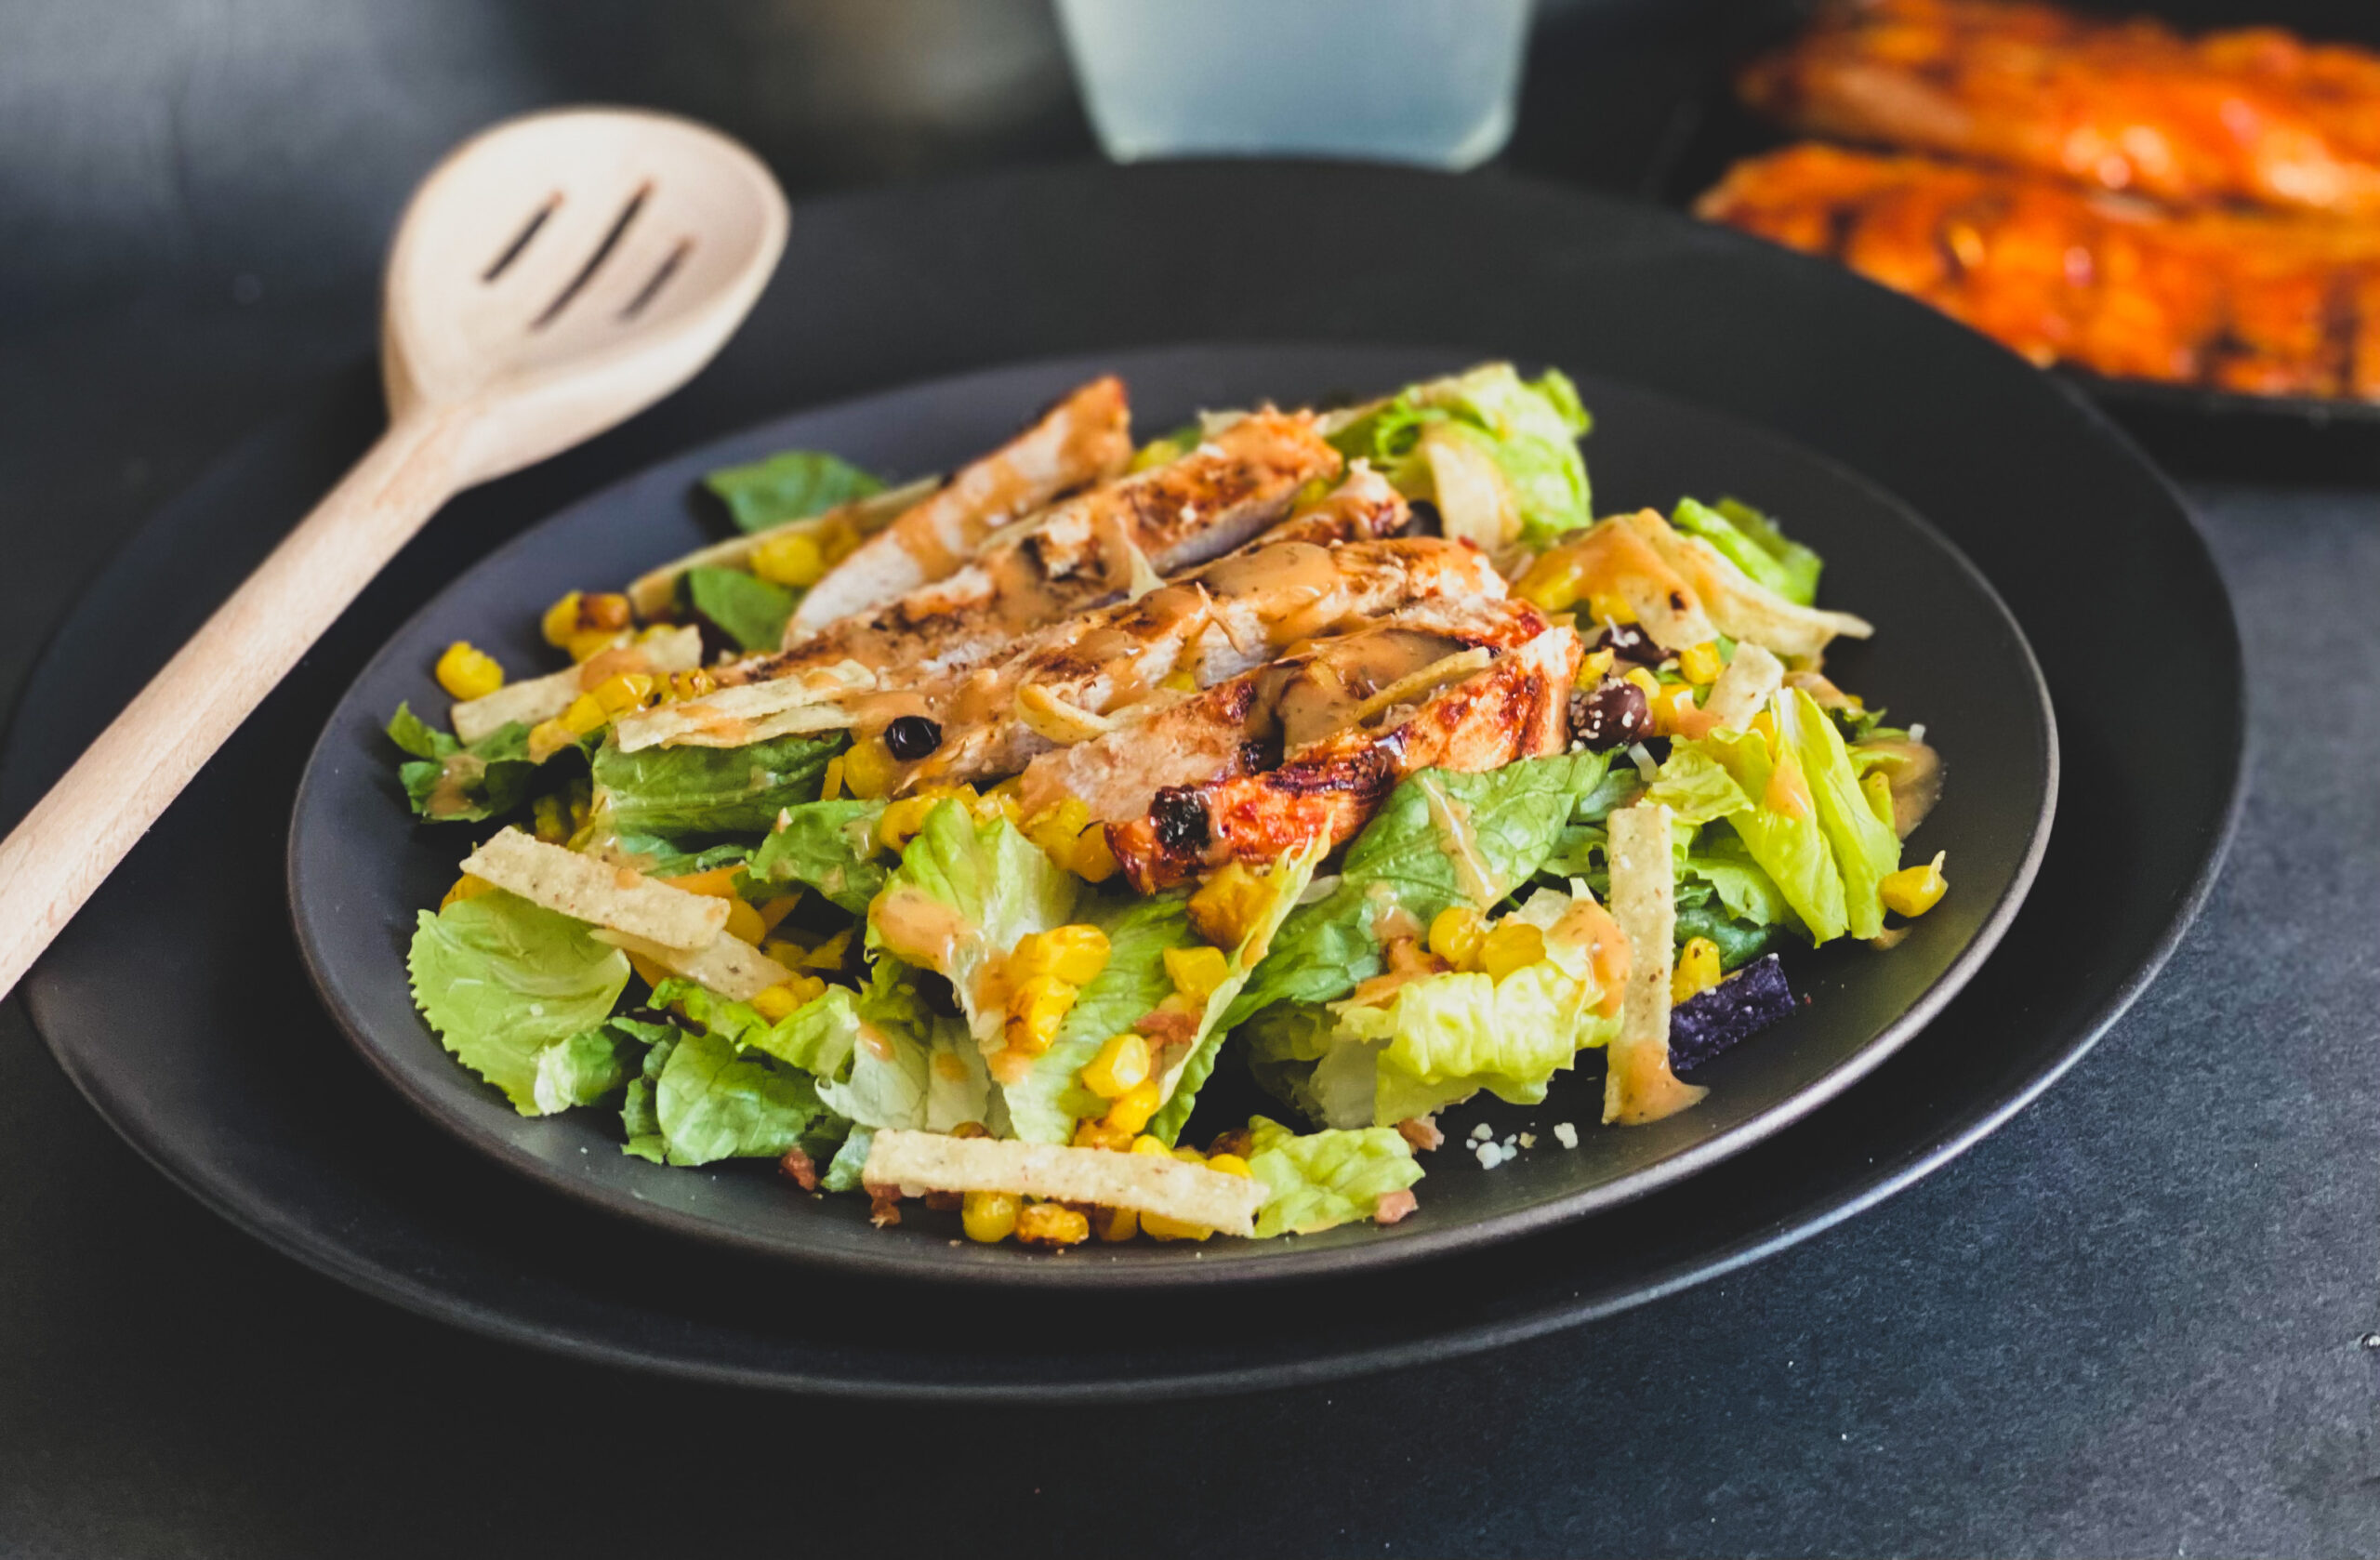 barbeque salad chicken salad tortilla barbeque sauce five ingredient gluten free dairy free egg free nut free soy free